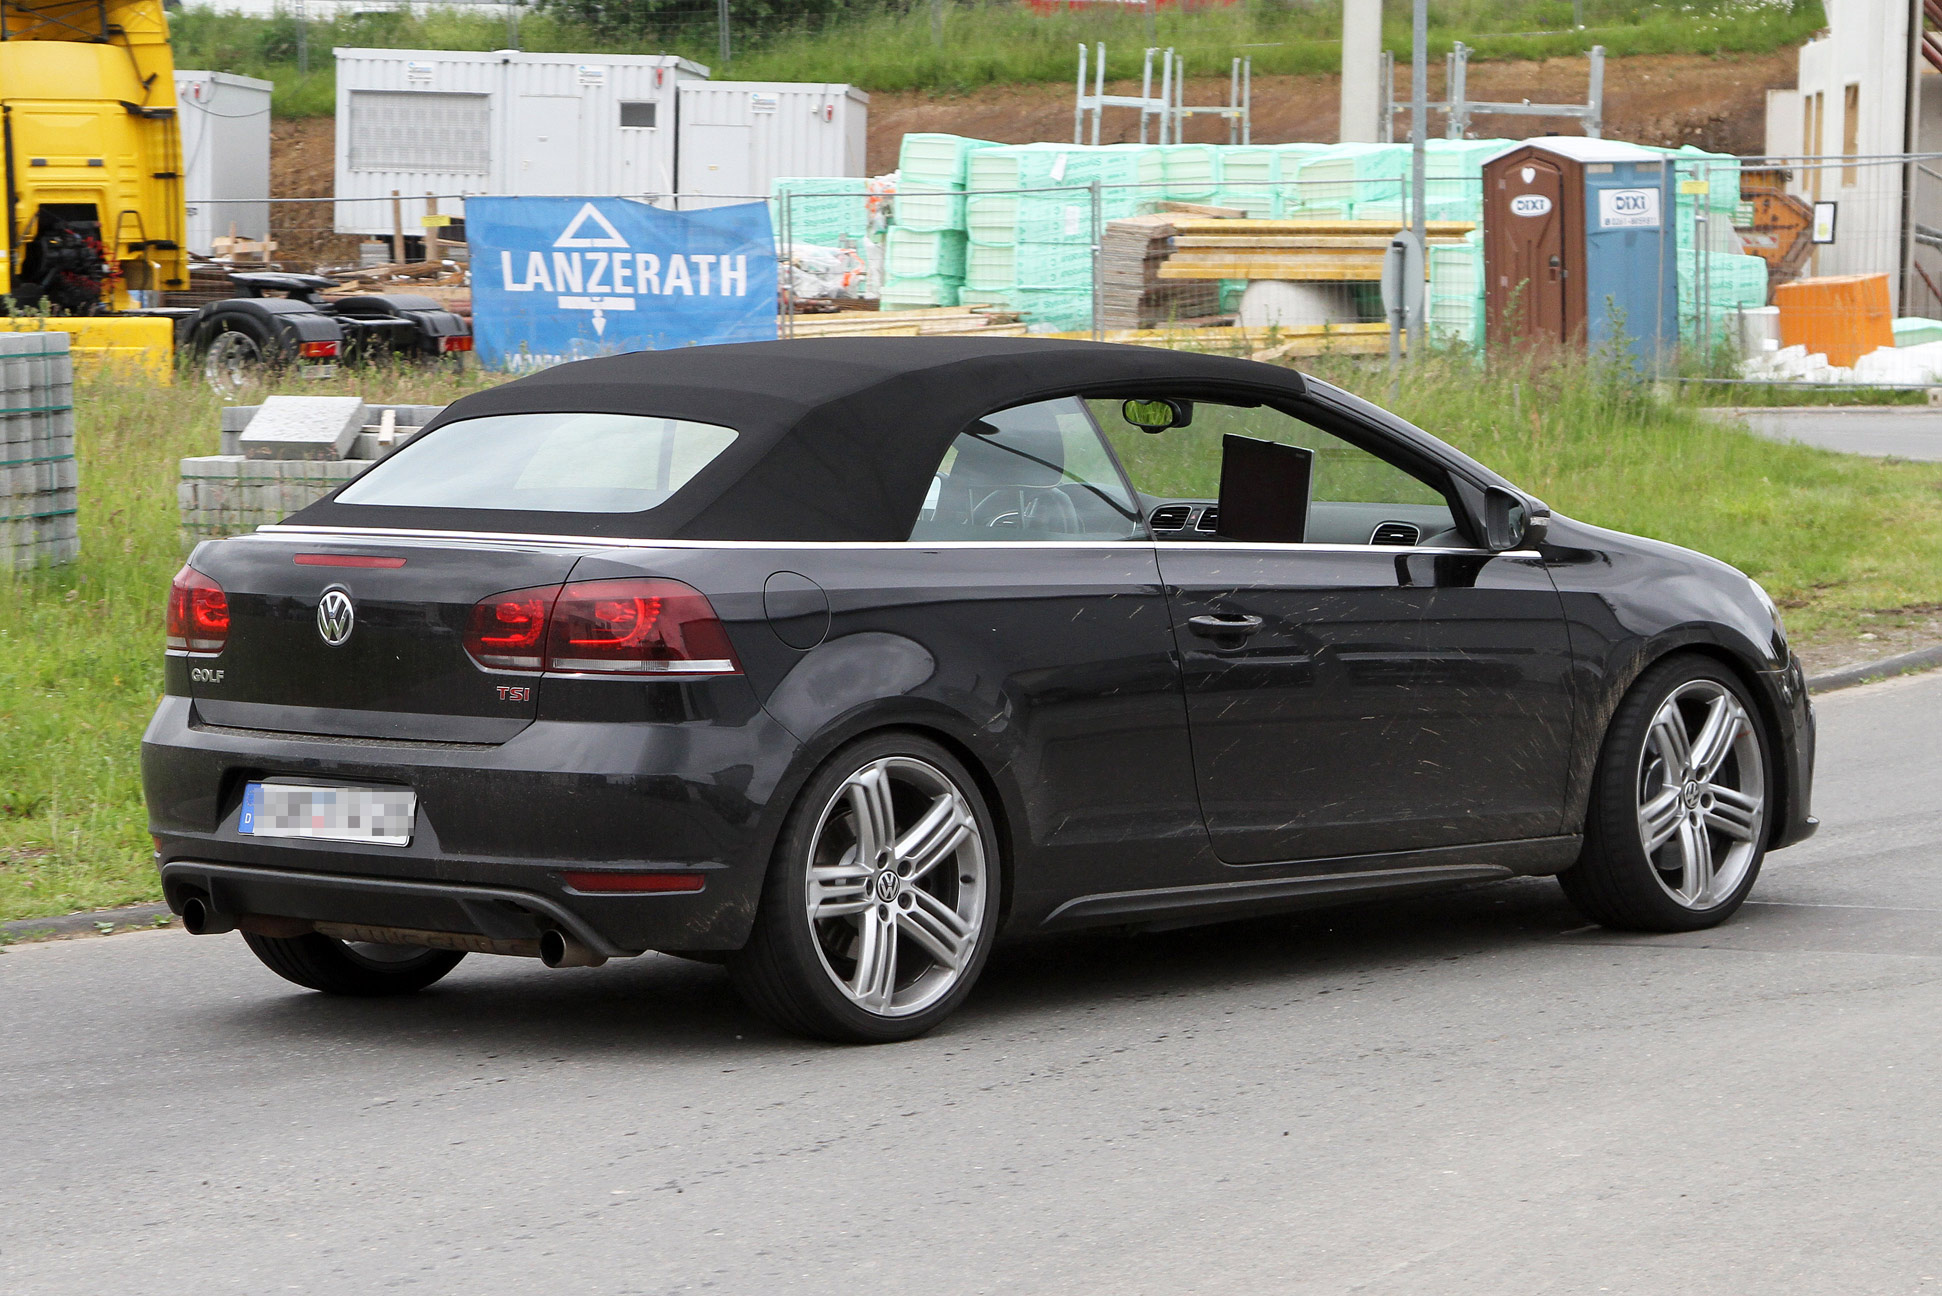 volkswagen golf r cabrio spy photo 004 600x400